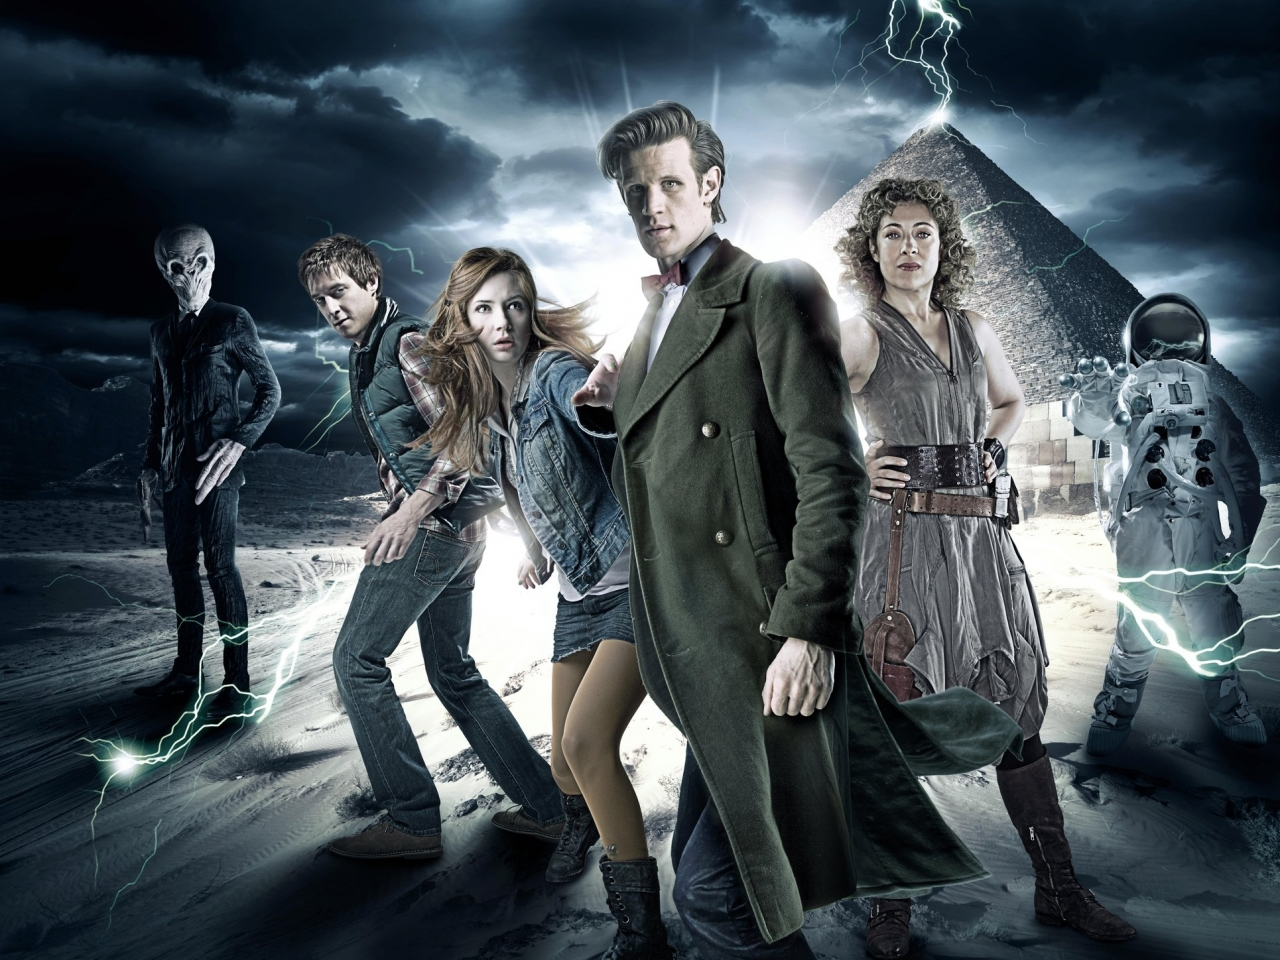 doctor who river song alex kingston rory williams Art HD Wallpaper 1280x960